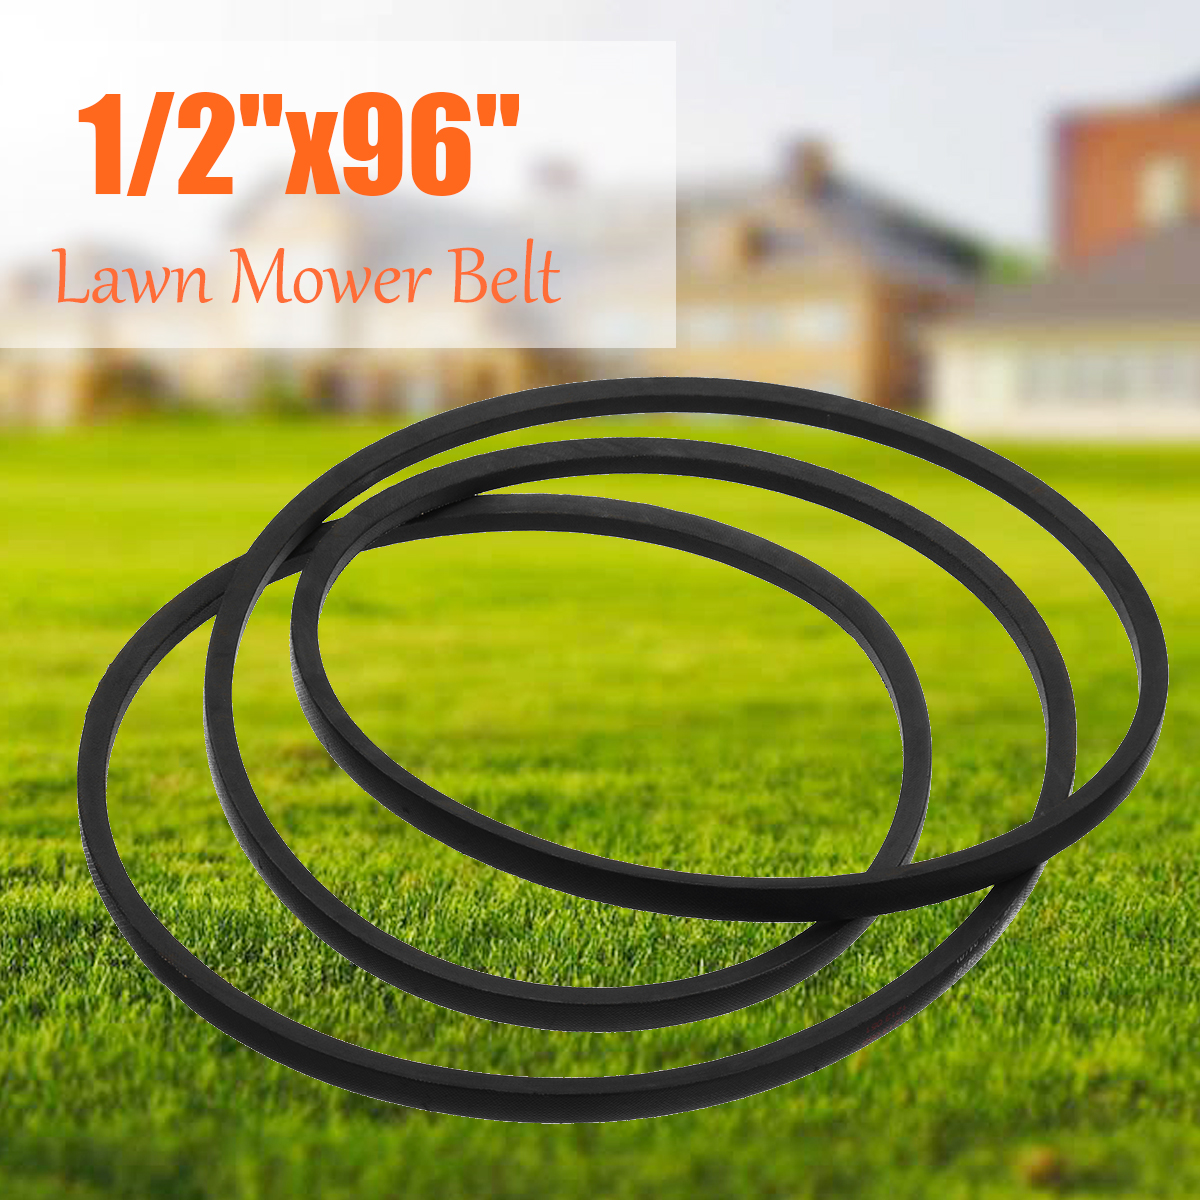 hight resolution of for yard machine lawn mower belts tractor drive v belt for lawn mover parts 13mm 1 2 x 96 k type vee rubber belt for industry